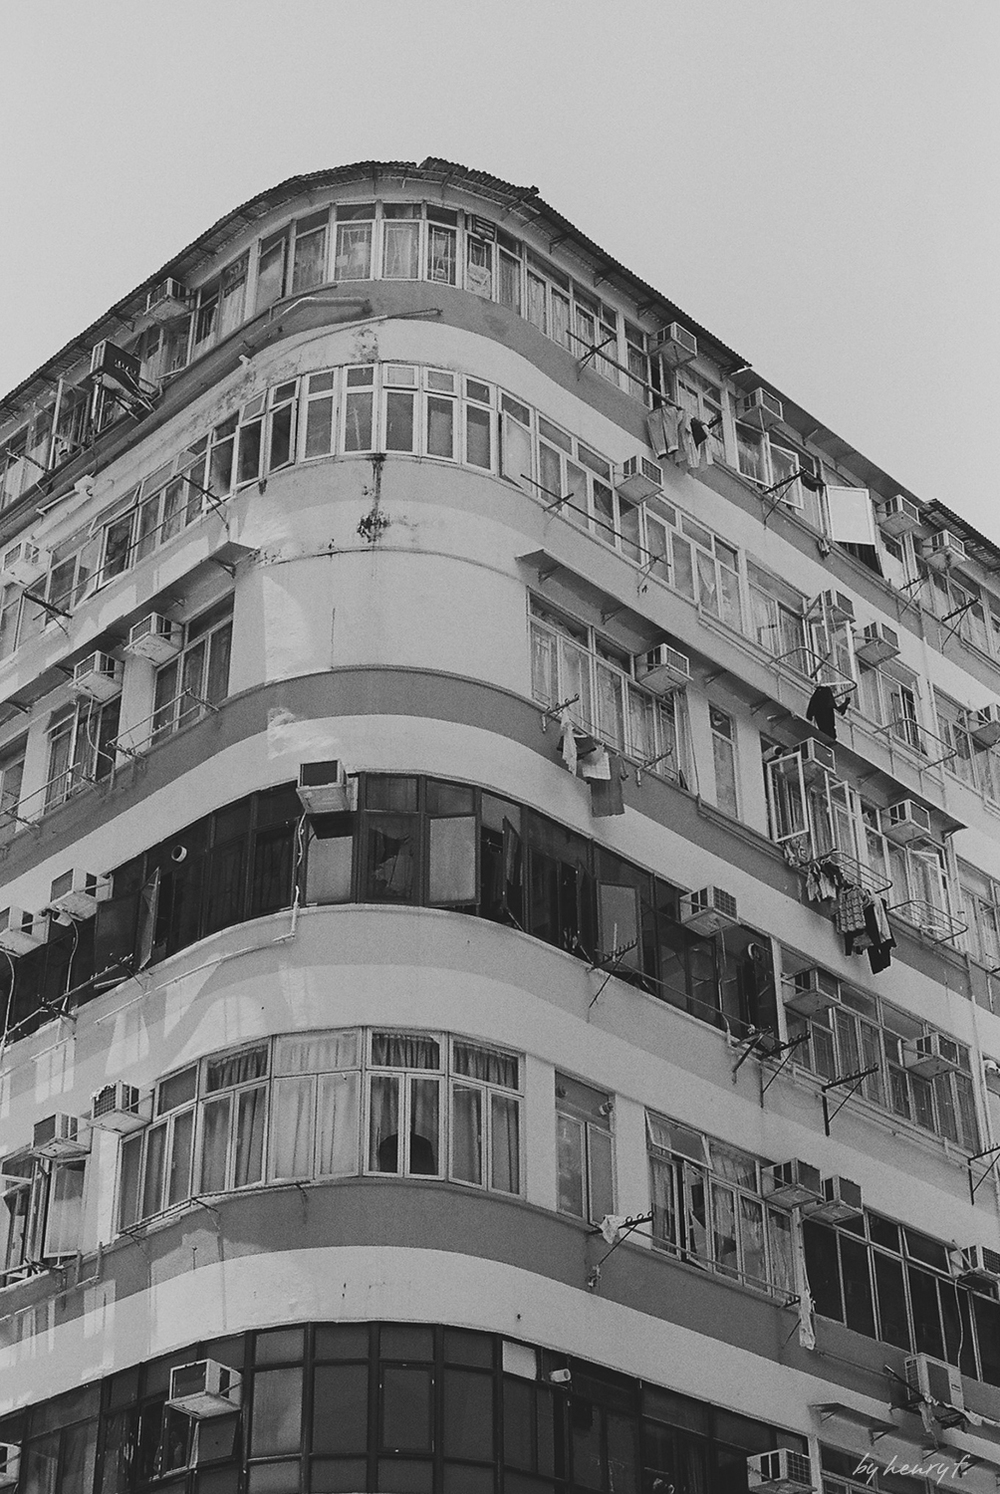 tenement building in shan shui po